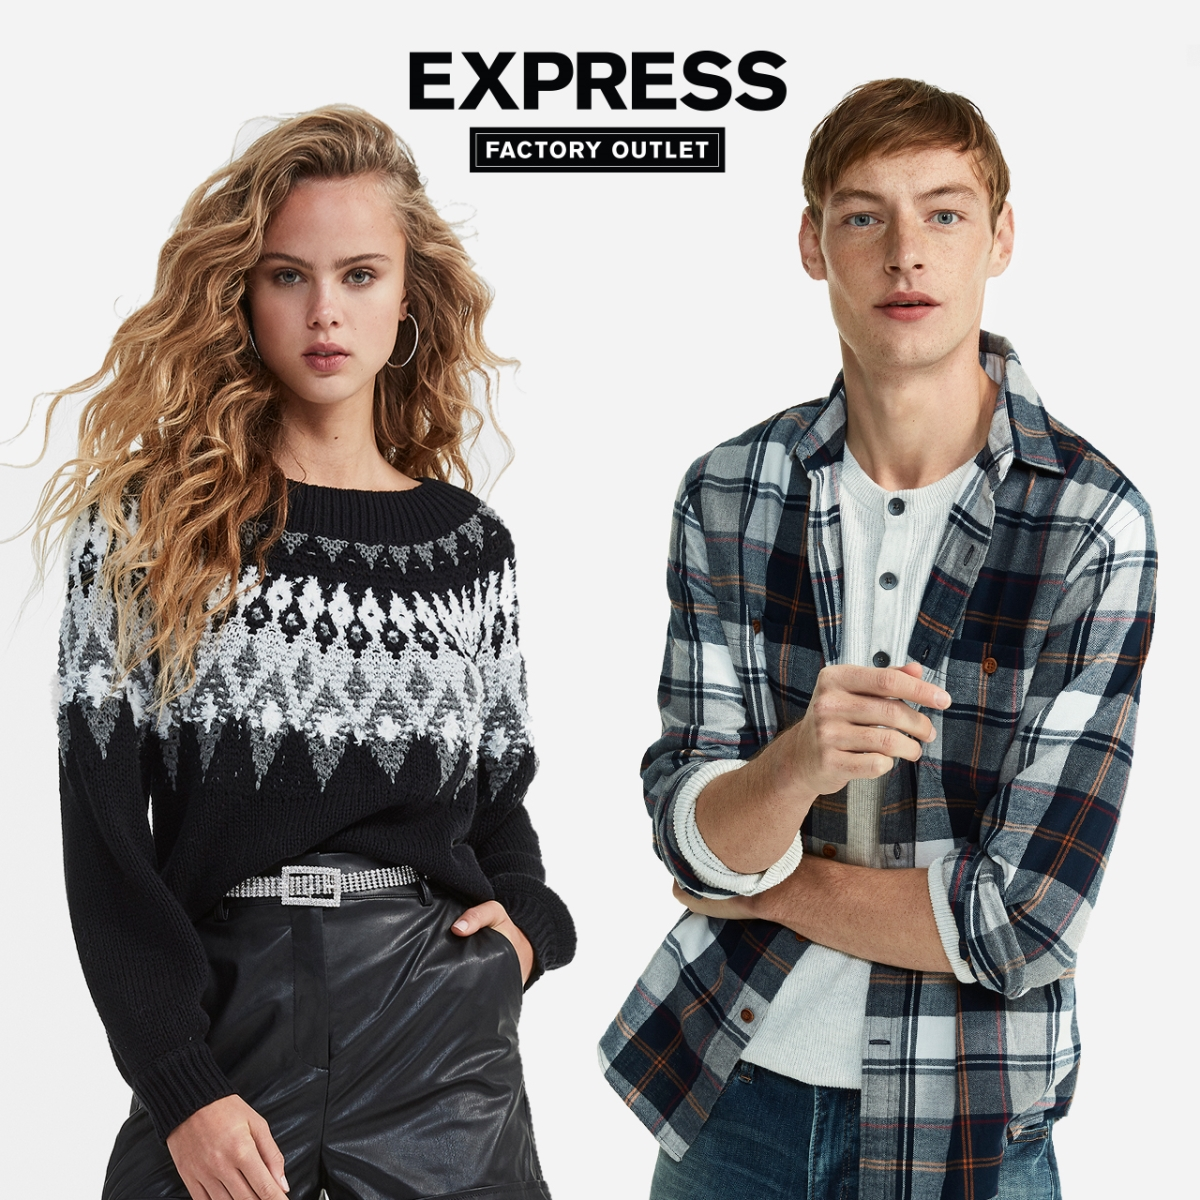 Everything 50% Off + Exclusive Doorbusters including $24 Jeans from Express